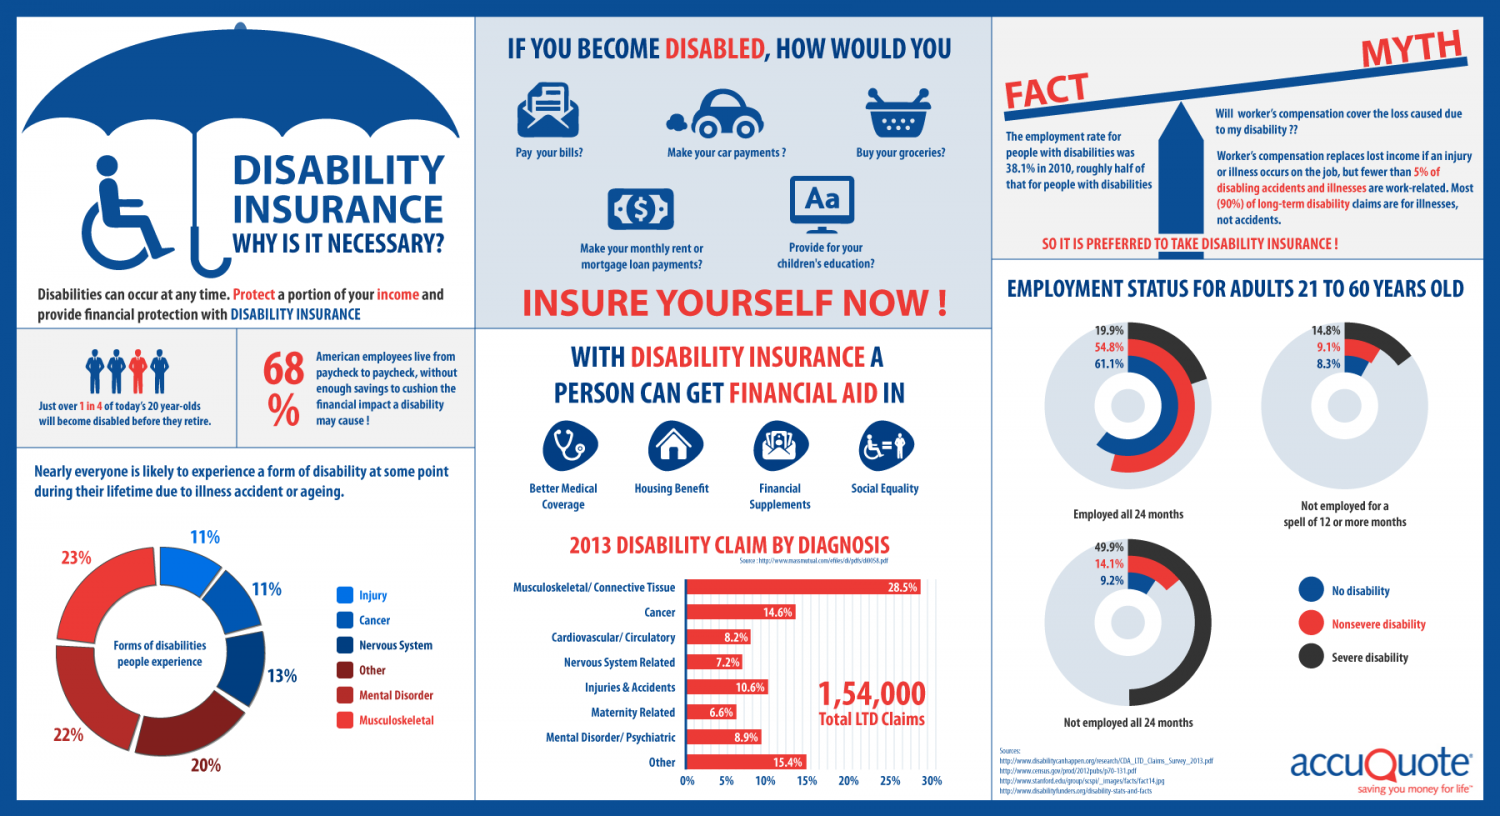 Disability Insurance - Why is it Necessary? Infographic